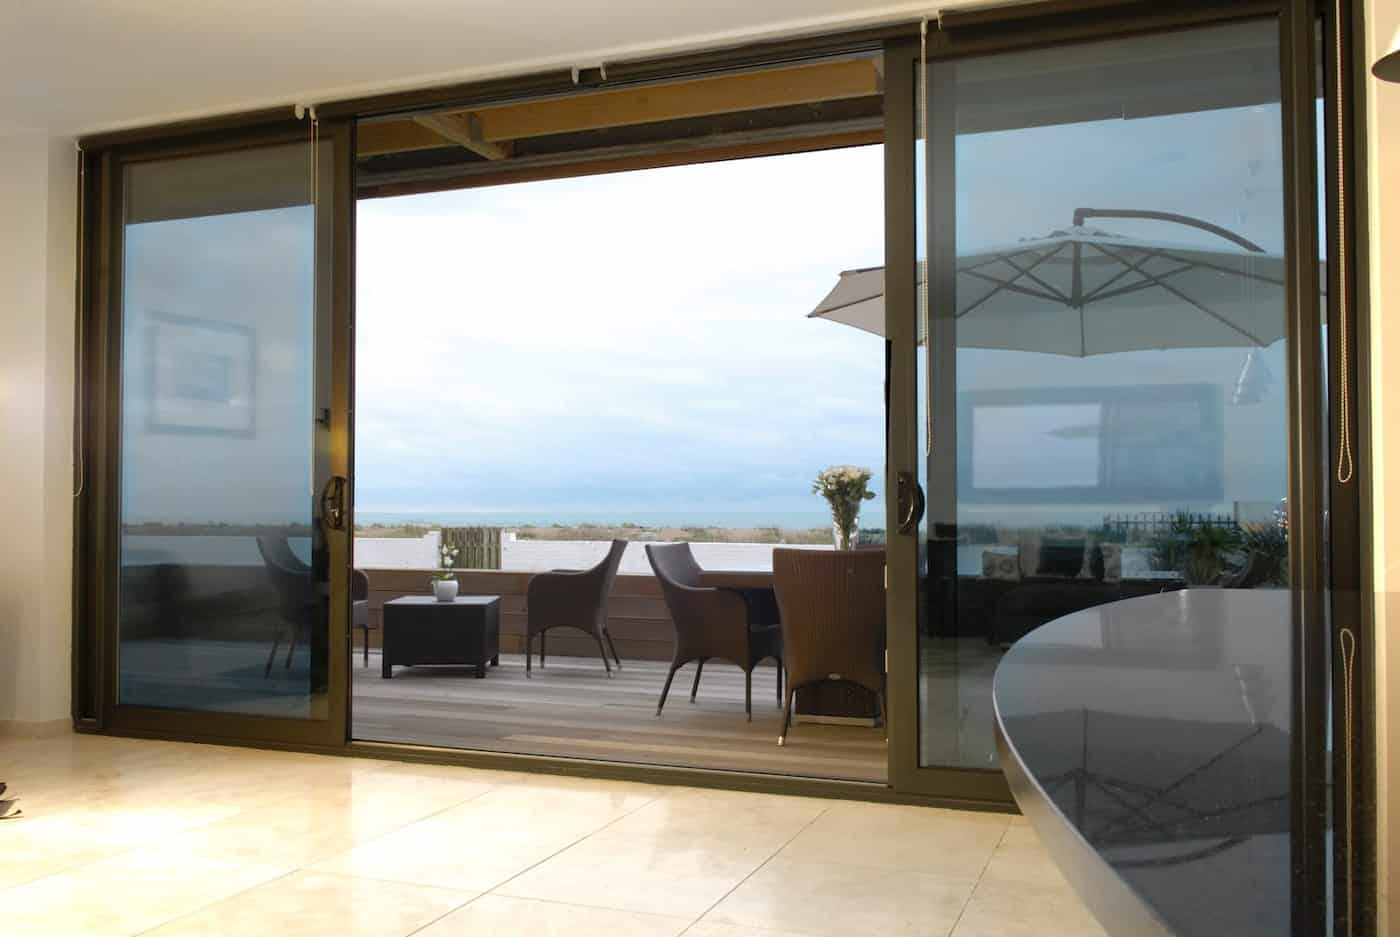 Bowalker aluminium widespan sliding doors Sussex